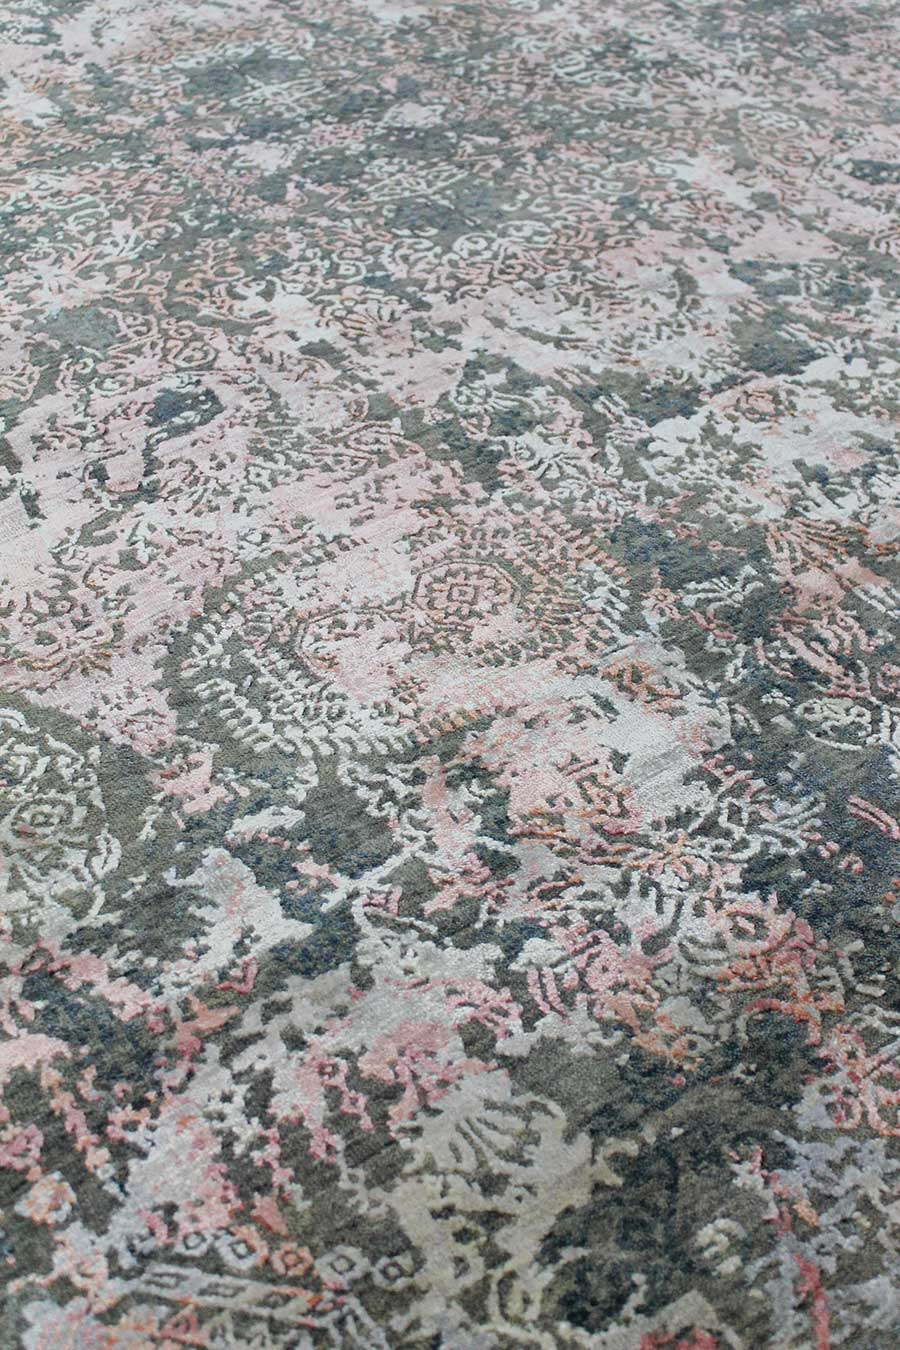 Detailed image of traditional Kismet rug in pink and beige colour